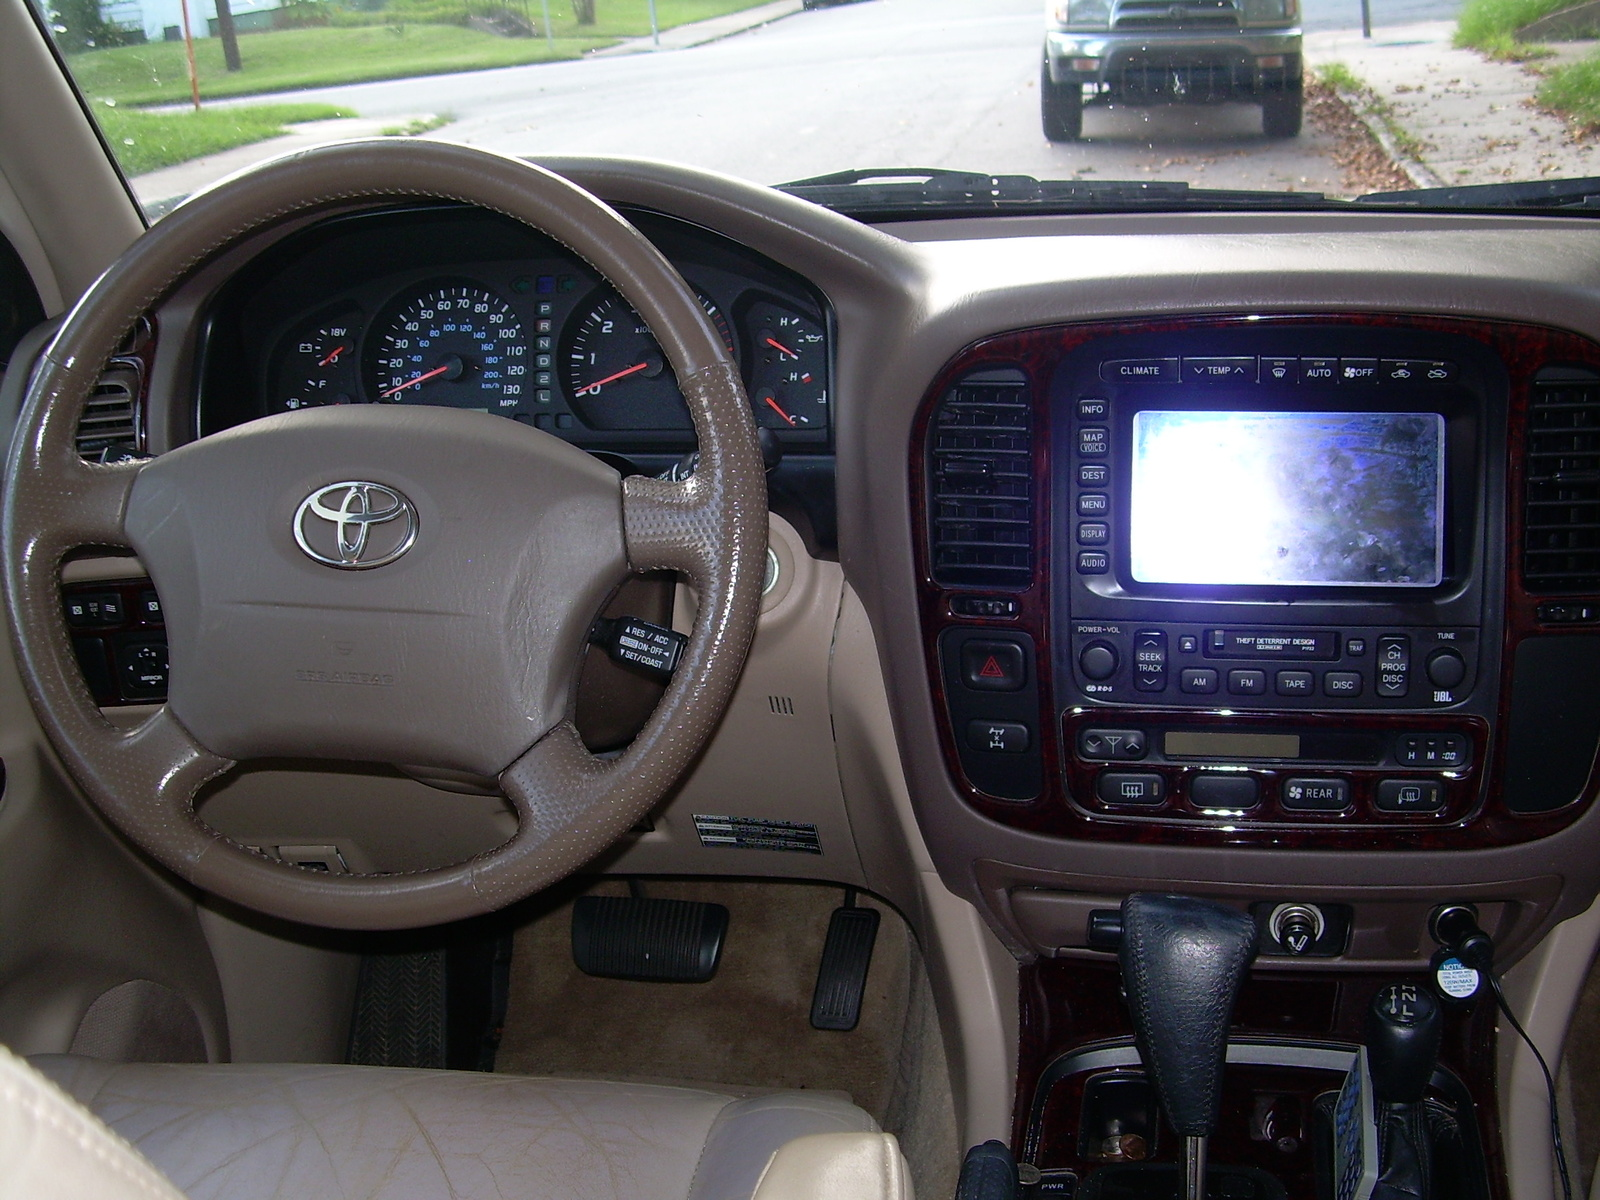 2002 Toyota Land Cruiser #22